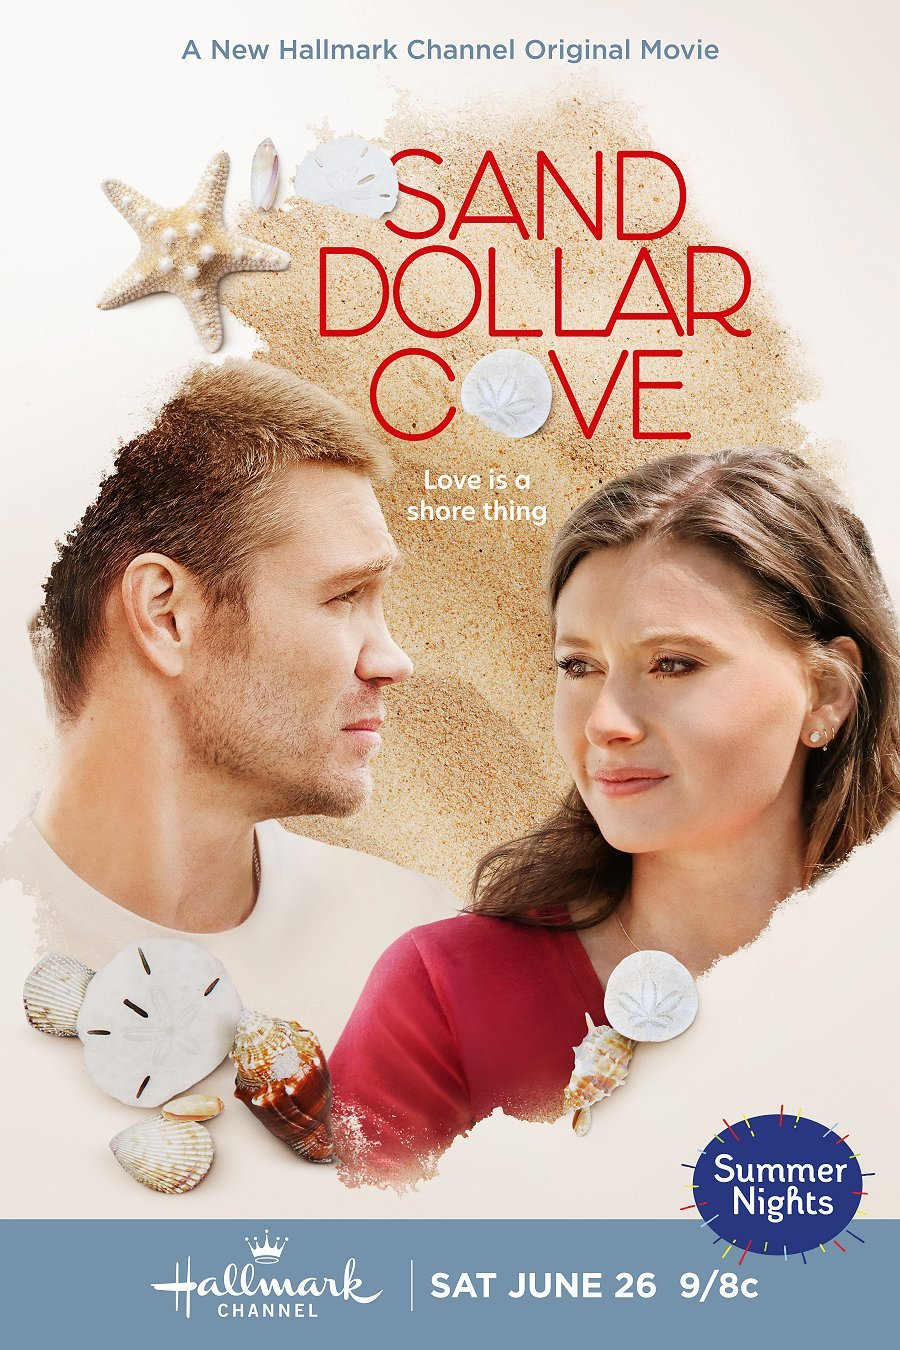 """Poster for Hallmark movie Sand Dollar Cove released June 26th, 2021. The image features Chad Michael Murray in a white shirt & Aly Michalka in a red shirt looking towards but not at each other over a sand back ground embellished with sand dollars and other shells overlaid with the title """"SAND DOLLAR COVE"""" with sand dollars replacing the O. The subtitle is """"Love is a shore thing"""" and a blue oval with multicolored lines popping out of it says """"Summer Nights"""" in the right bottom corner. Flavorlab Sound provided full service audio post for the film."""